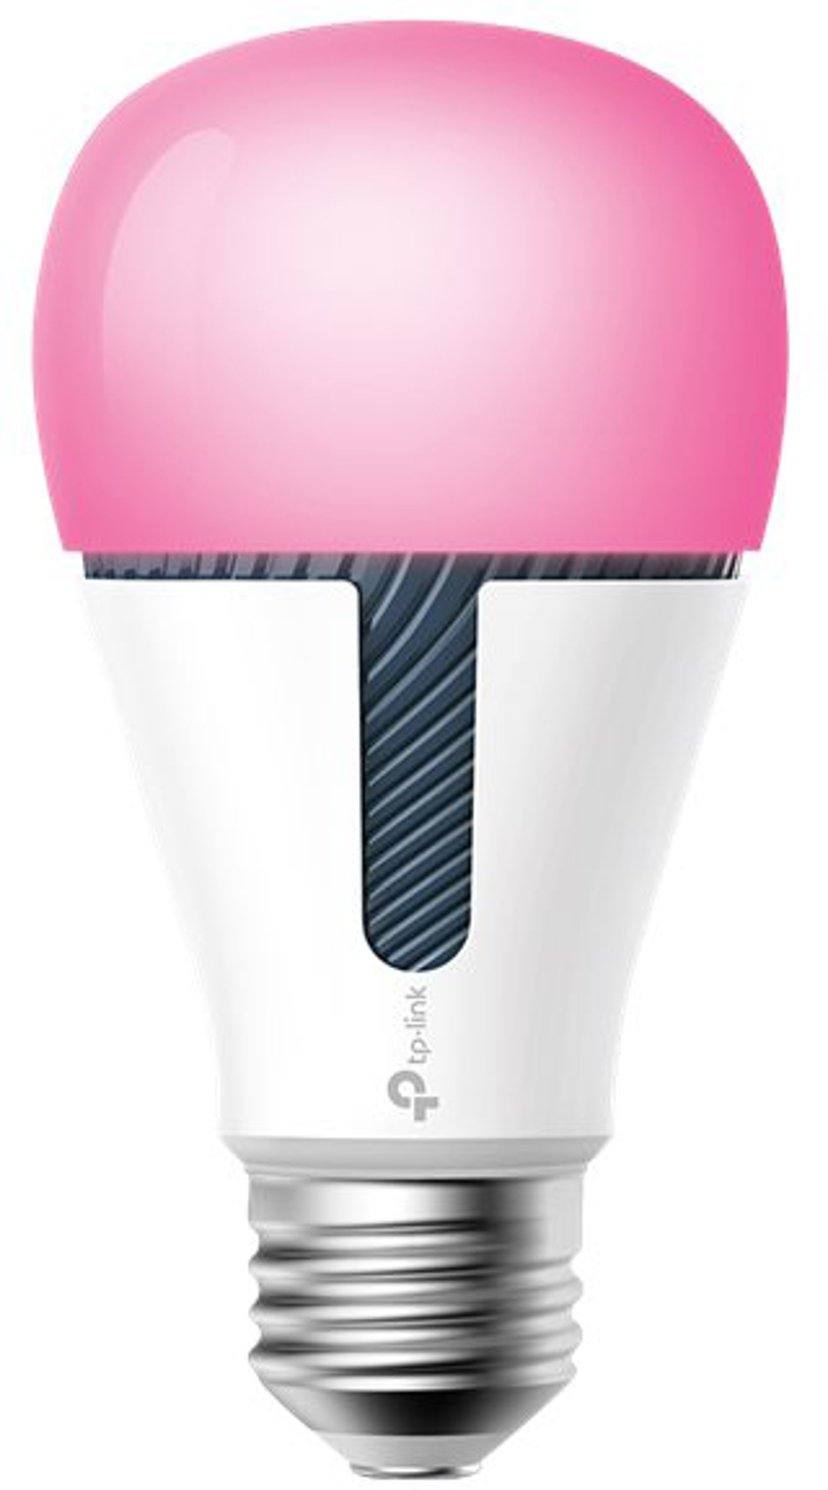 TP-Link KL130 Smart WiFi LED